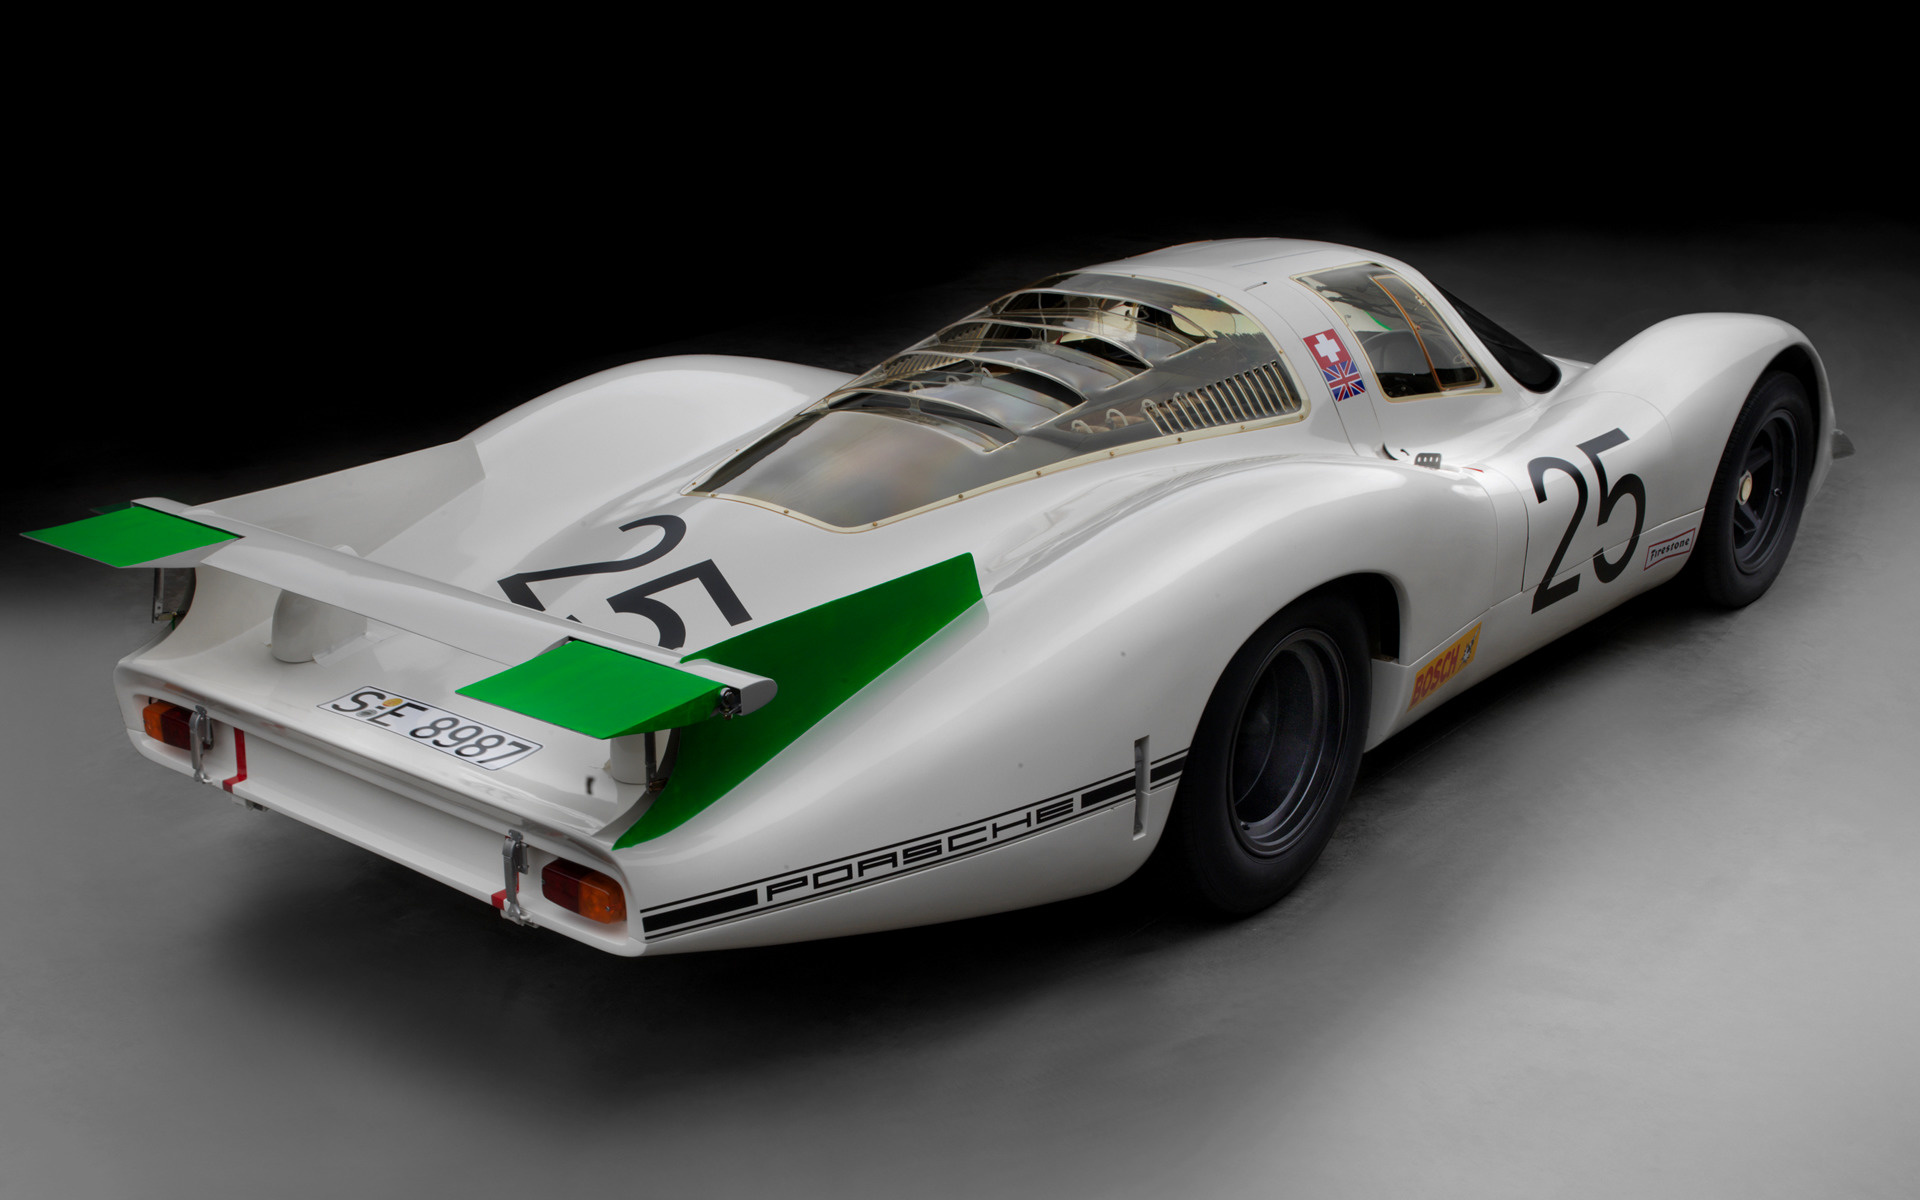 Ferrari F1 Car Wallpaper Porsche 908 Long Tail 1968 Wallpapers And Hd Images